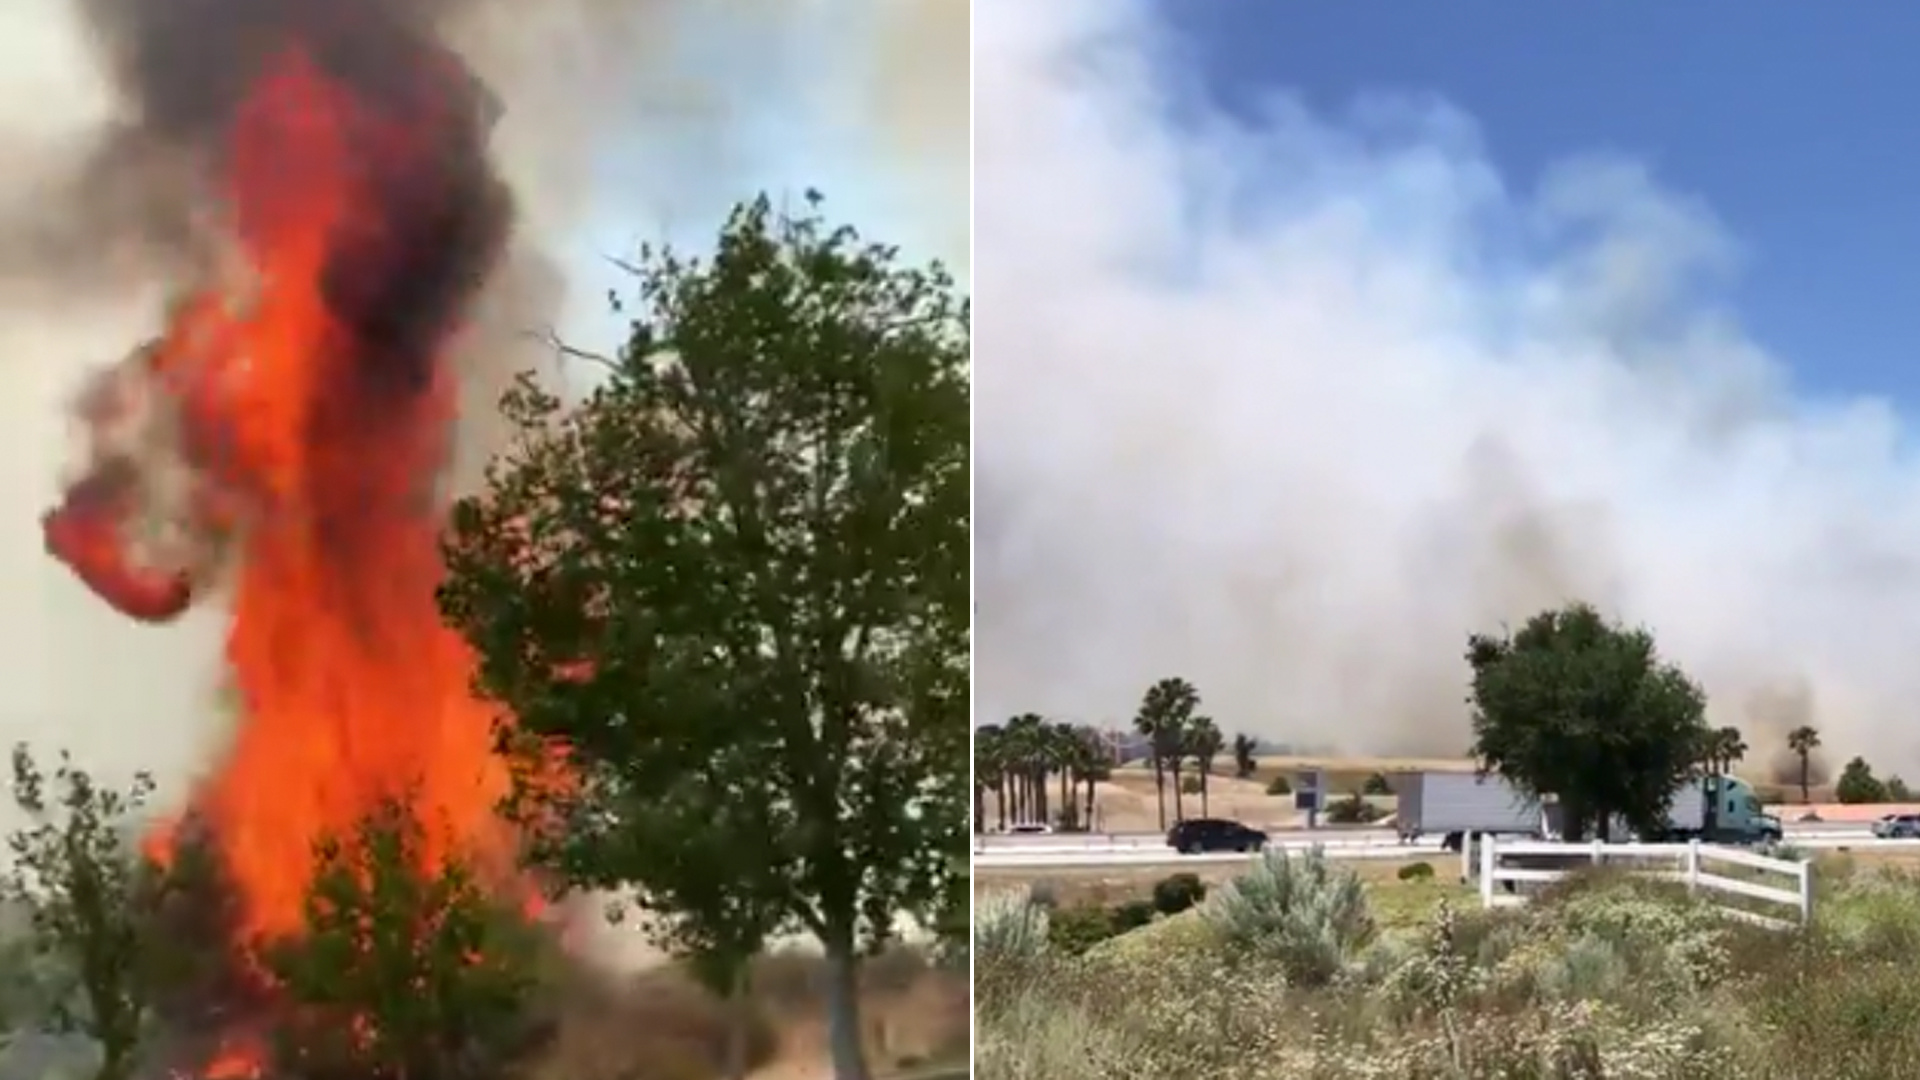 A fire is seen near Six Flags in Santa Clarita, on the left. (Credit: Christine Tonoli/Twitter) On the right, smoke billows from the fire on June 9, 2019. (Credit: City of Santa Clarita/Twitter)